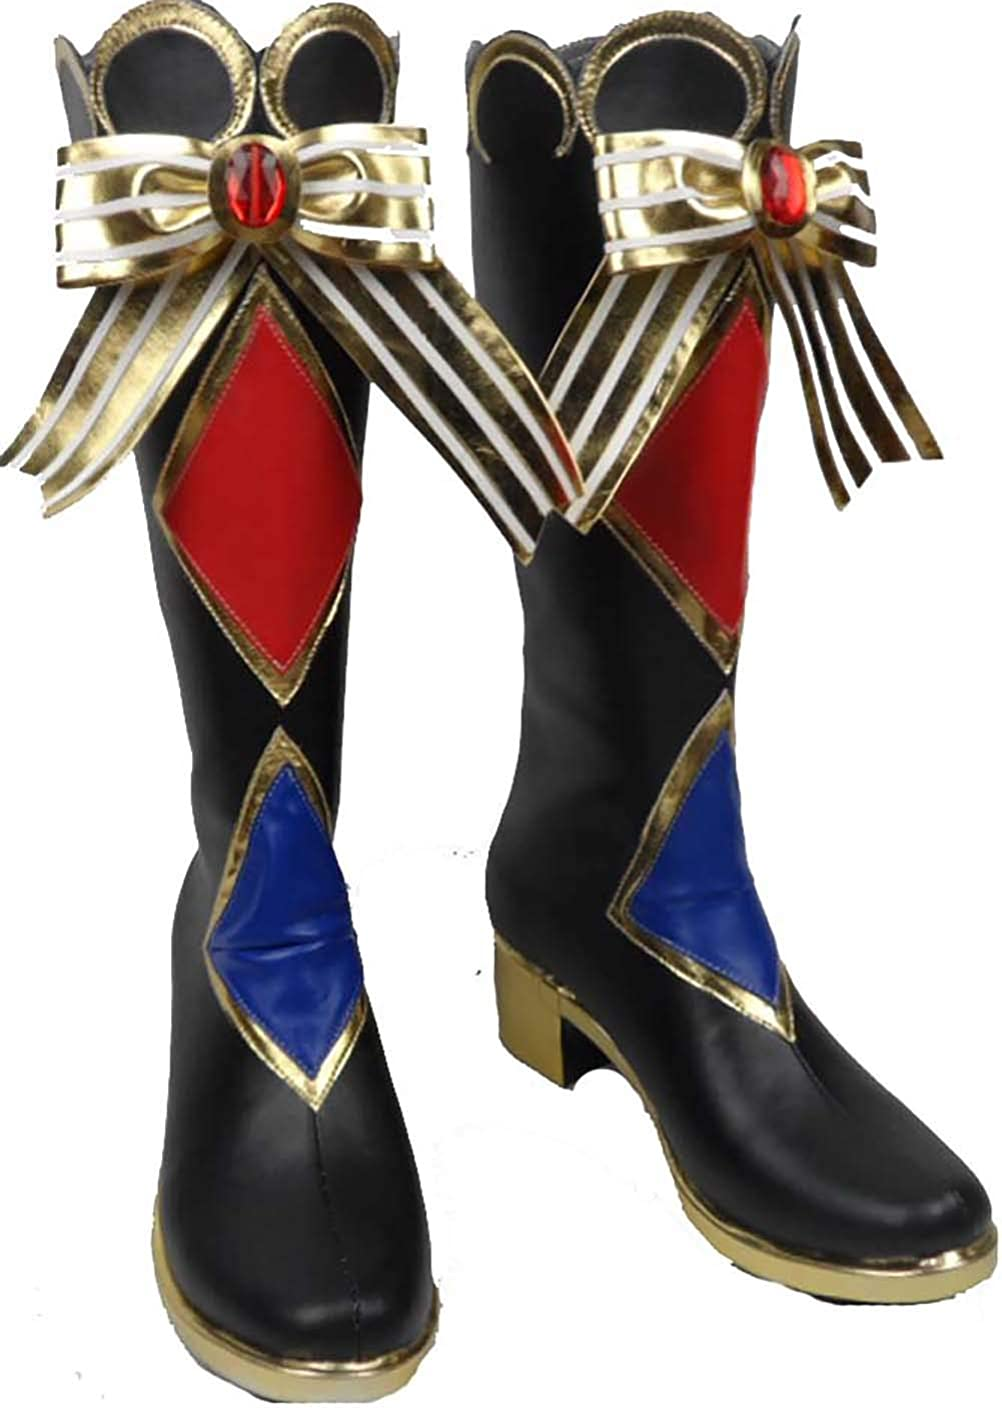 Love Live Circus Awaken Omaha Mall Cosplay Shoes Costume Boots lowest price Boot Shoe